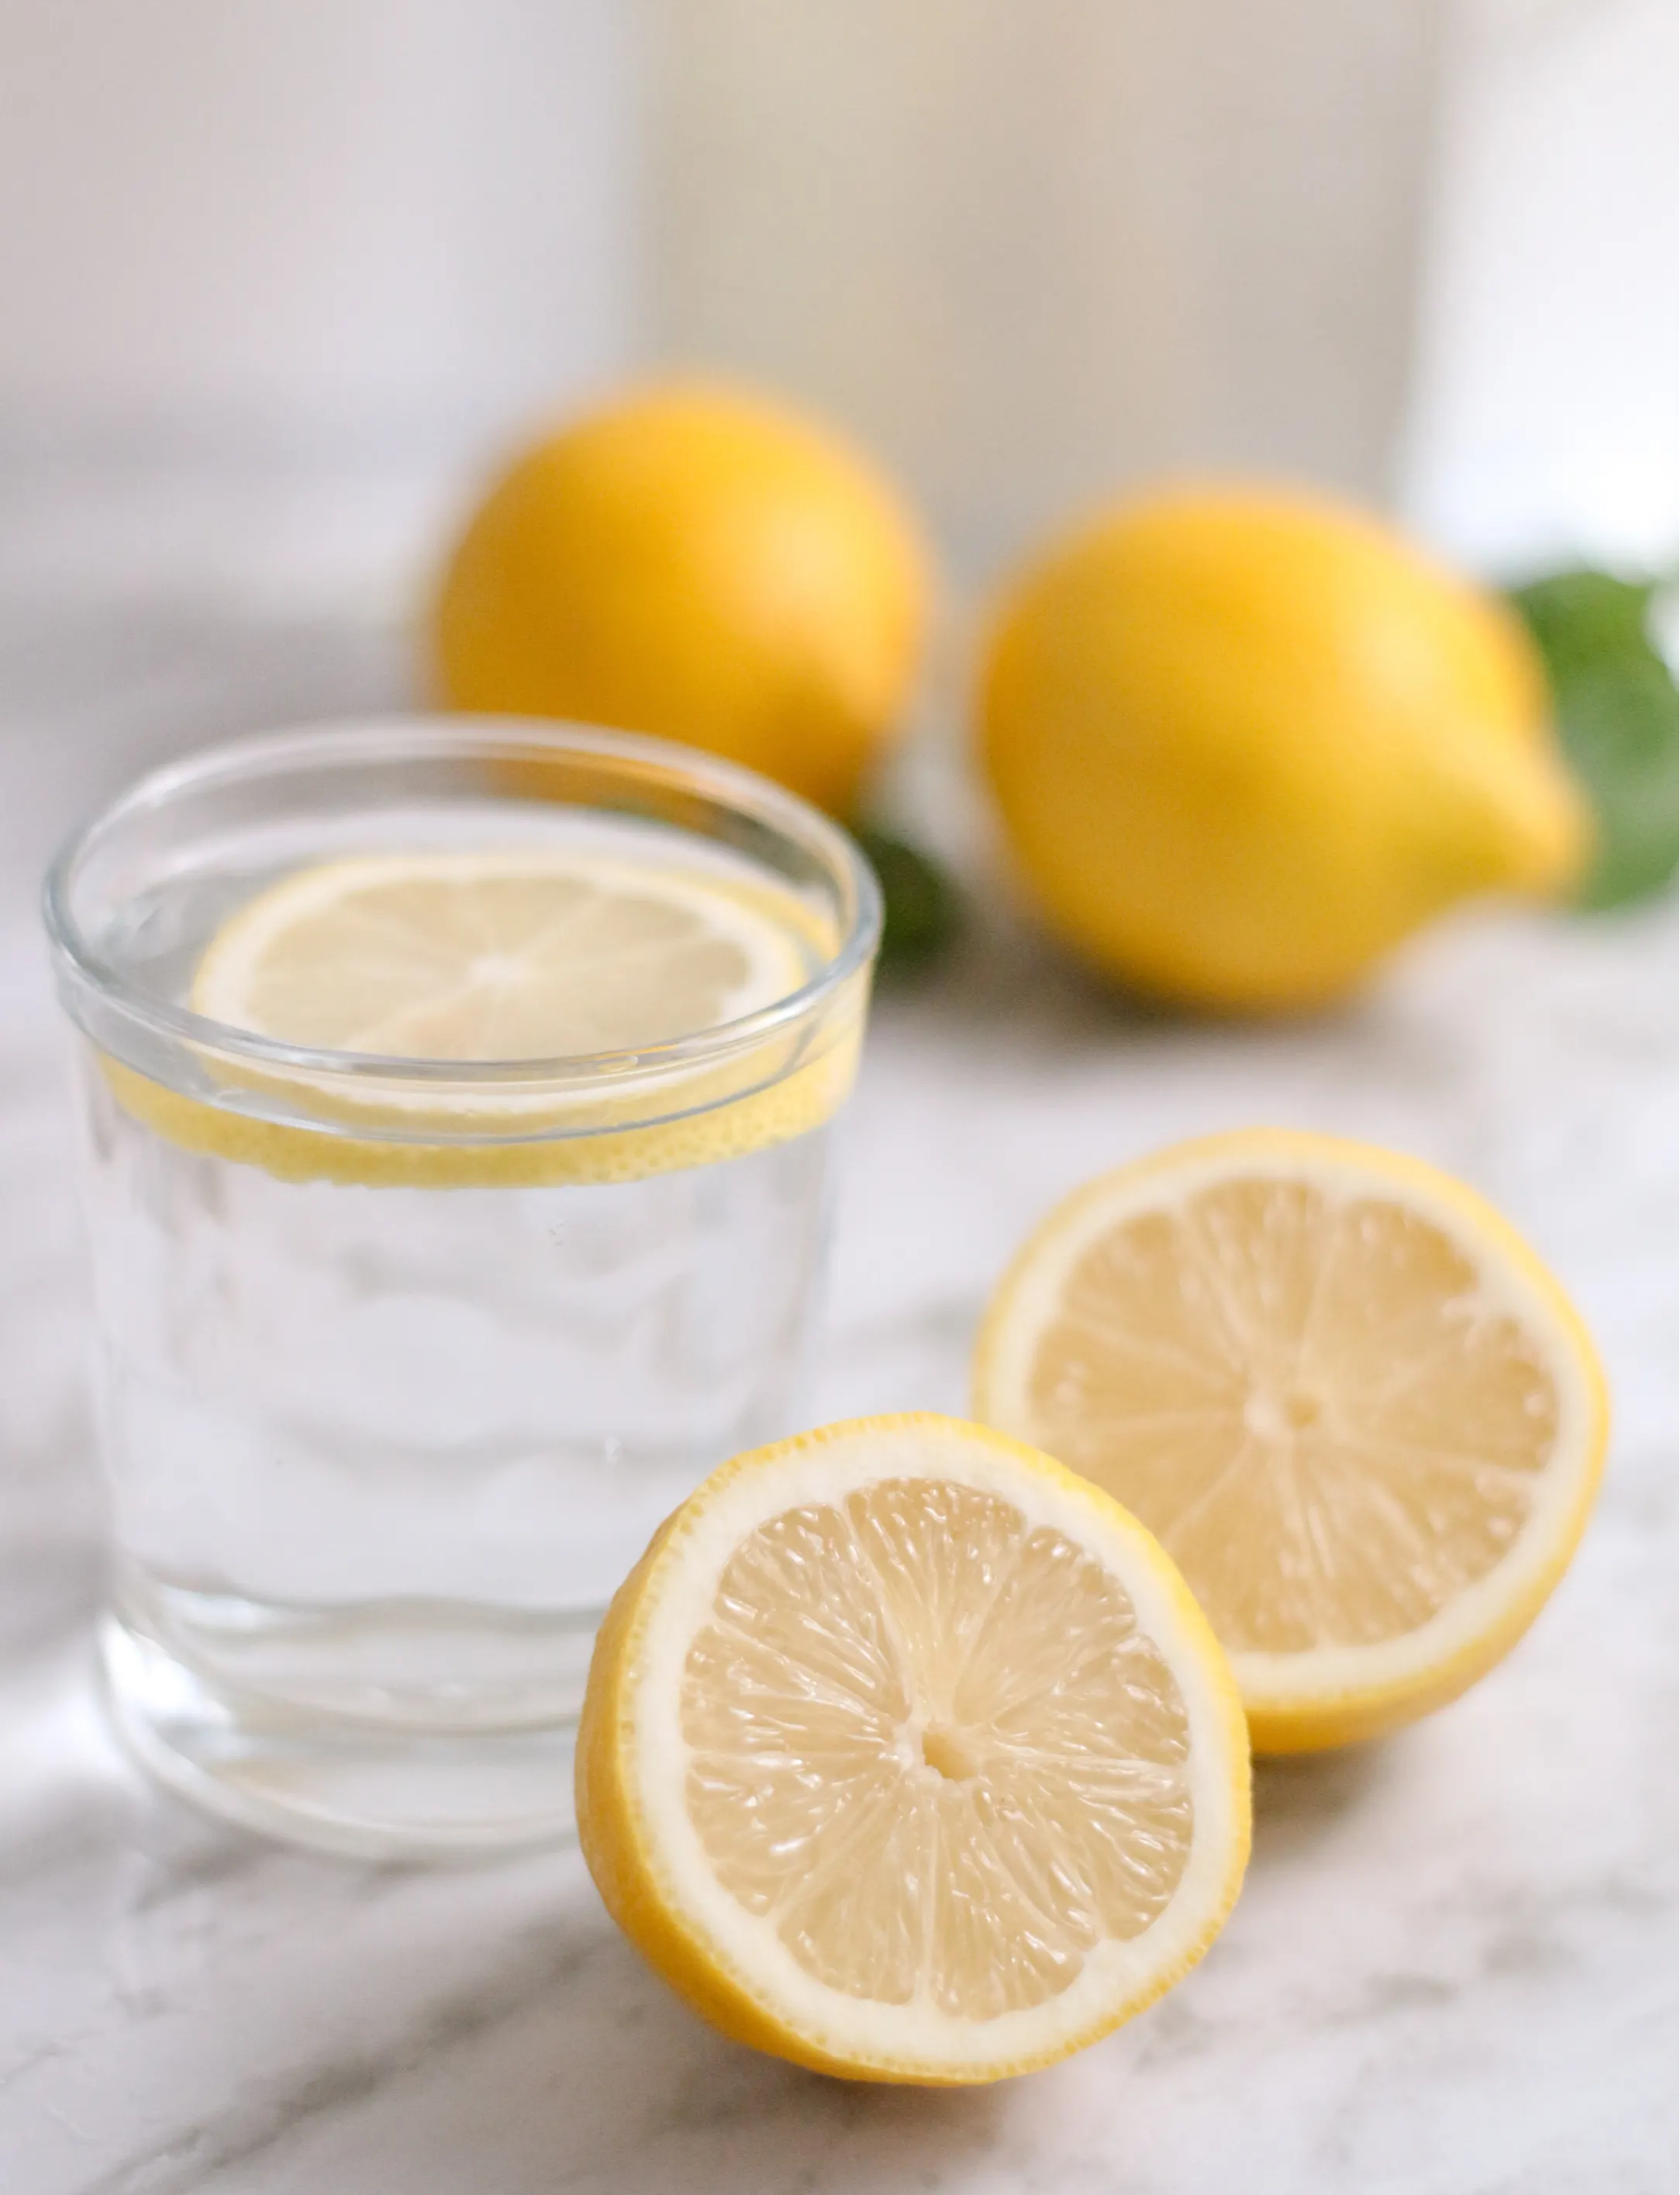 Glass of water with sliced lemons